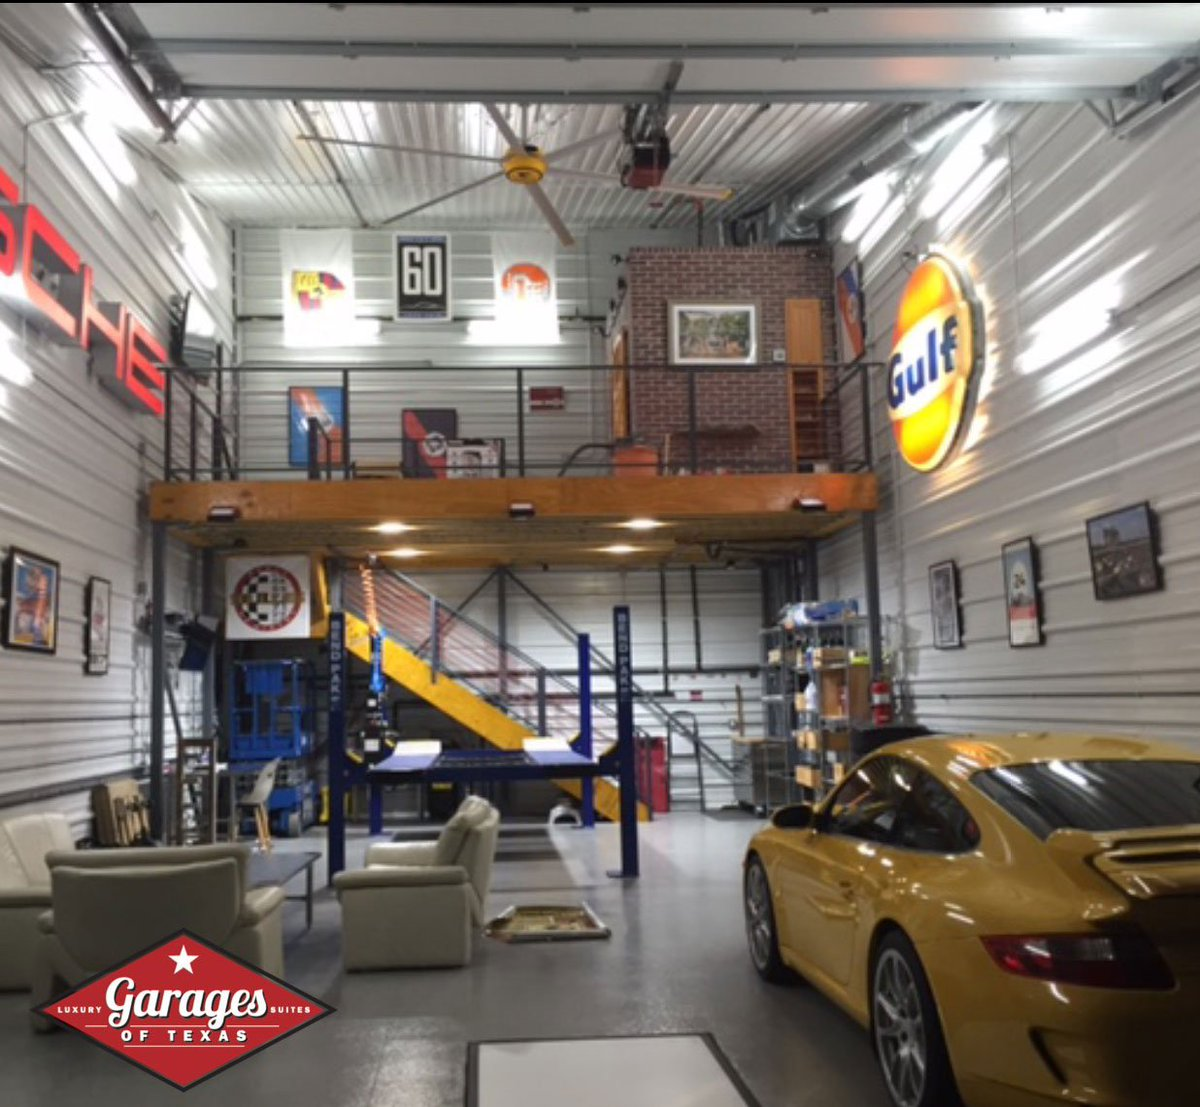 Garages of texas on twitter check out the mezzanine Garage storage mezzanine